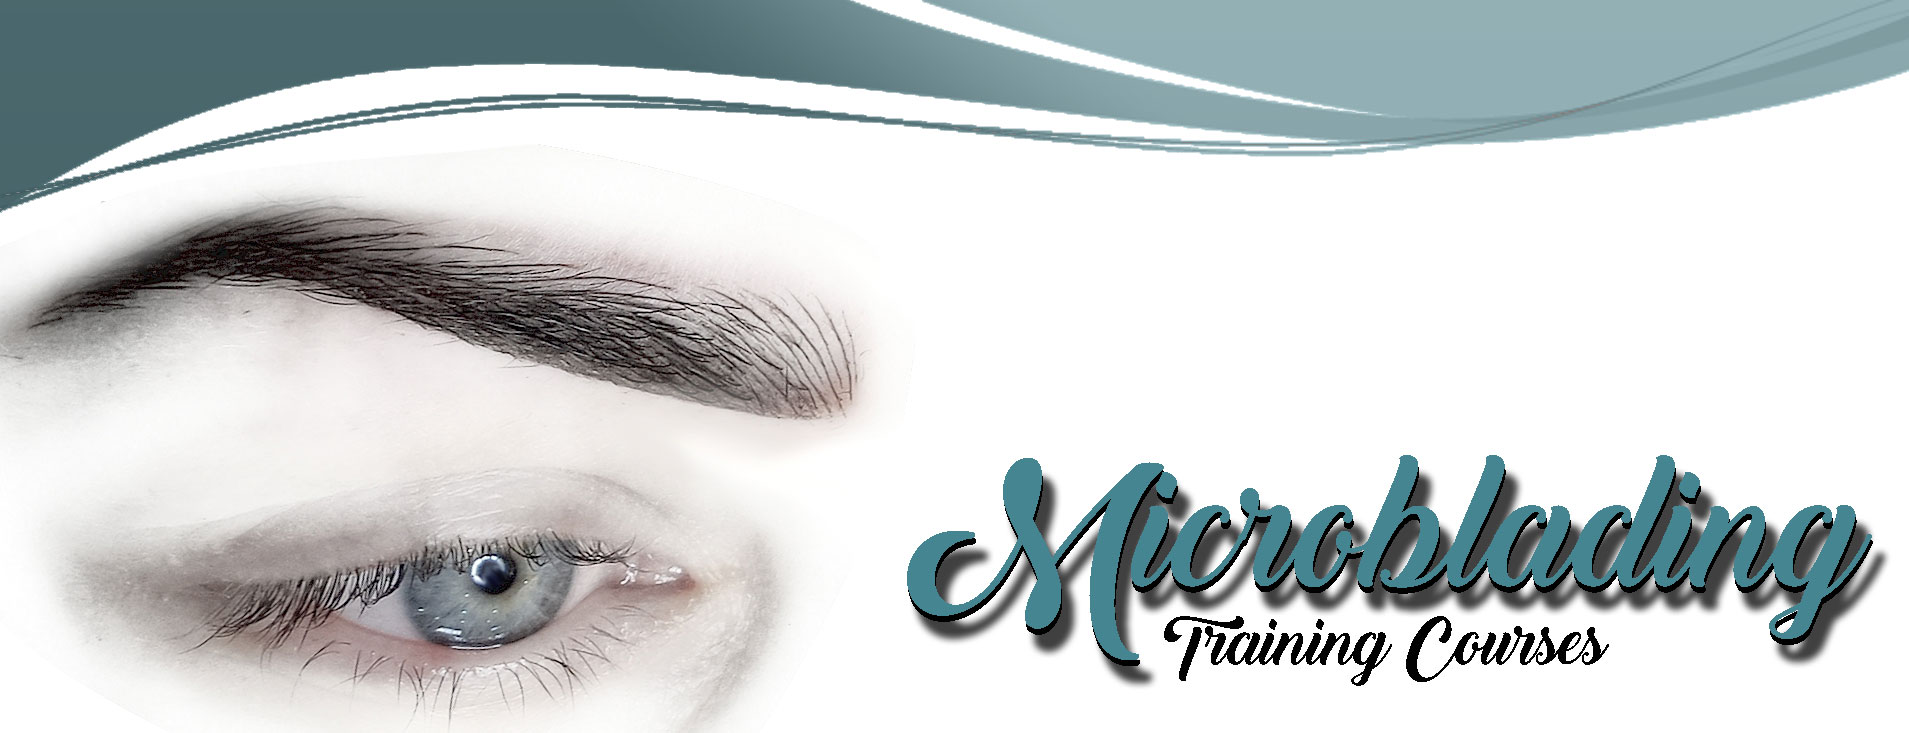 Microblading Training Courses NZ